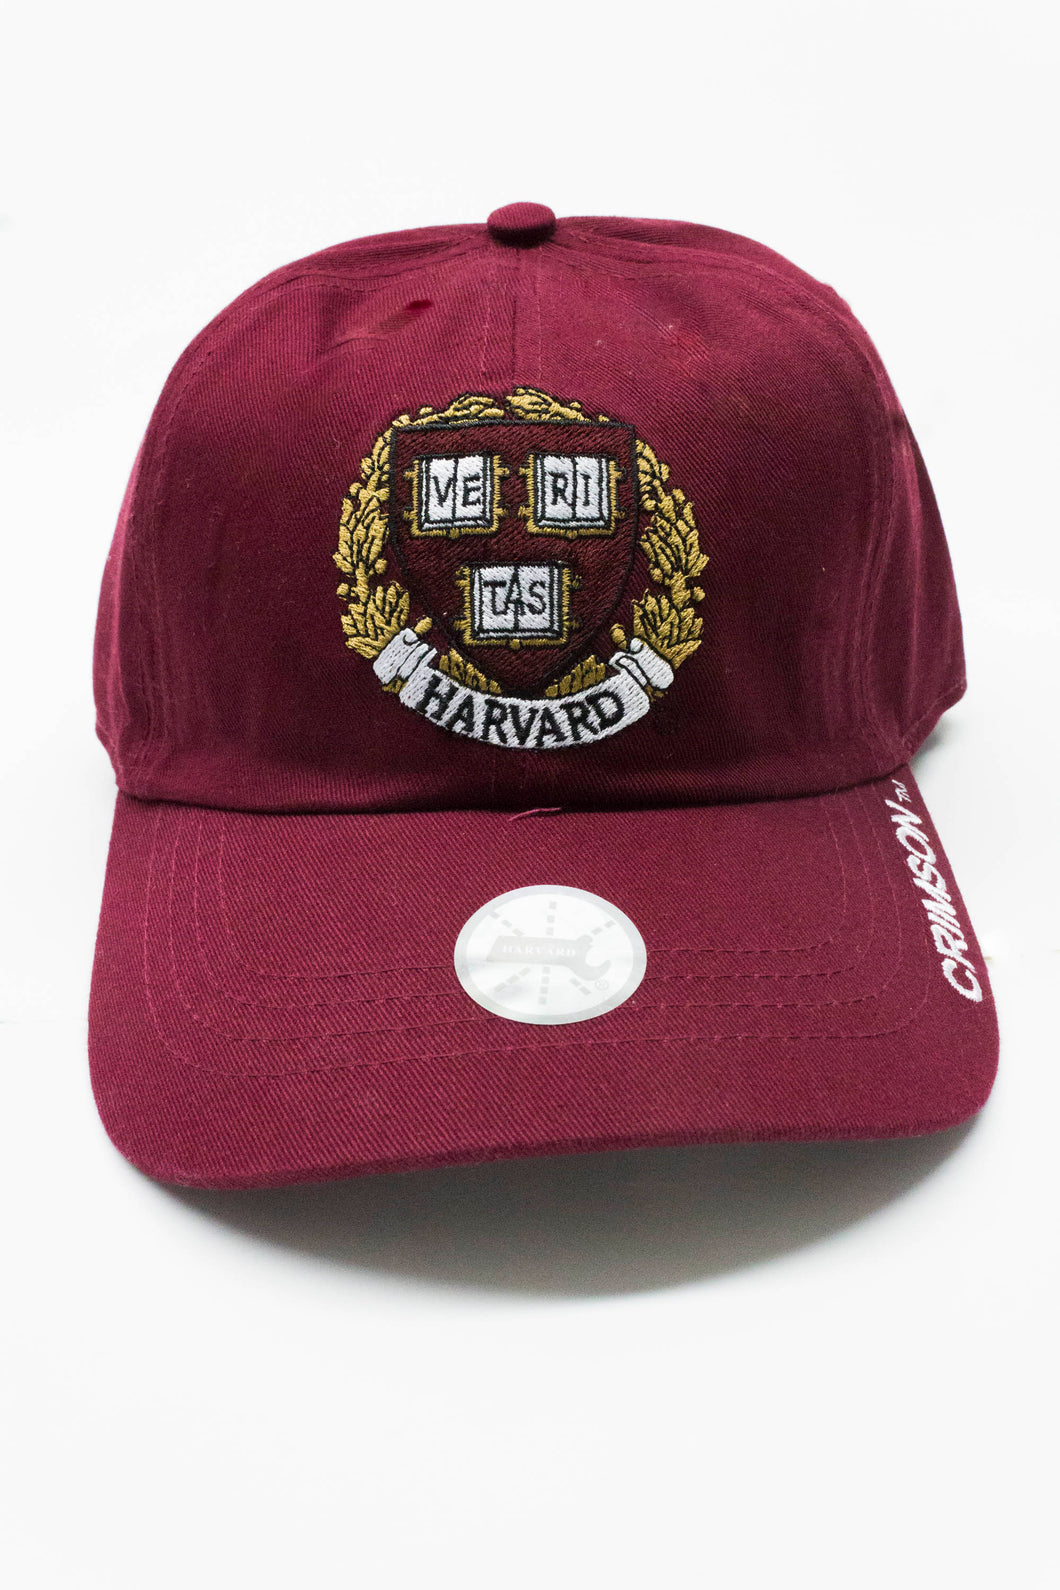 Harvard Crest Hat (Crimson)